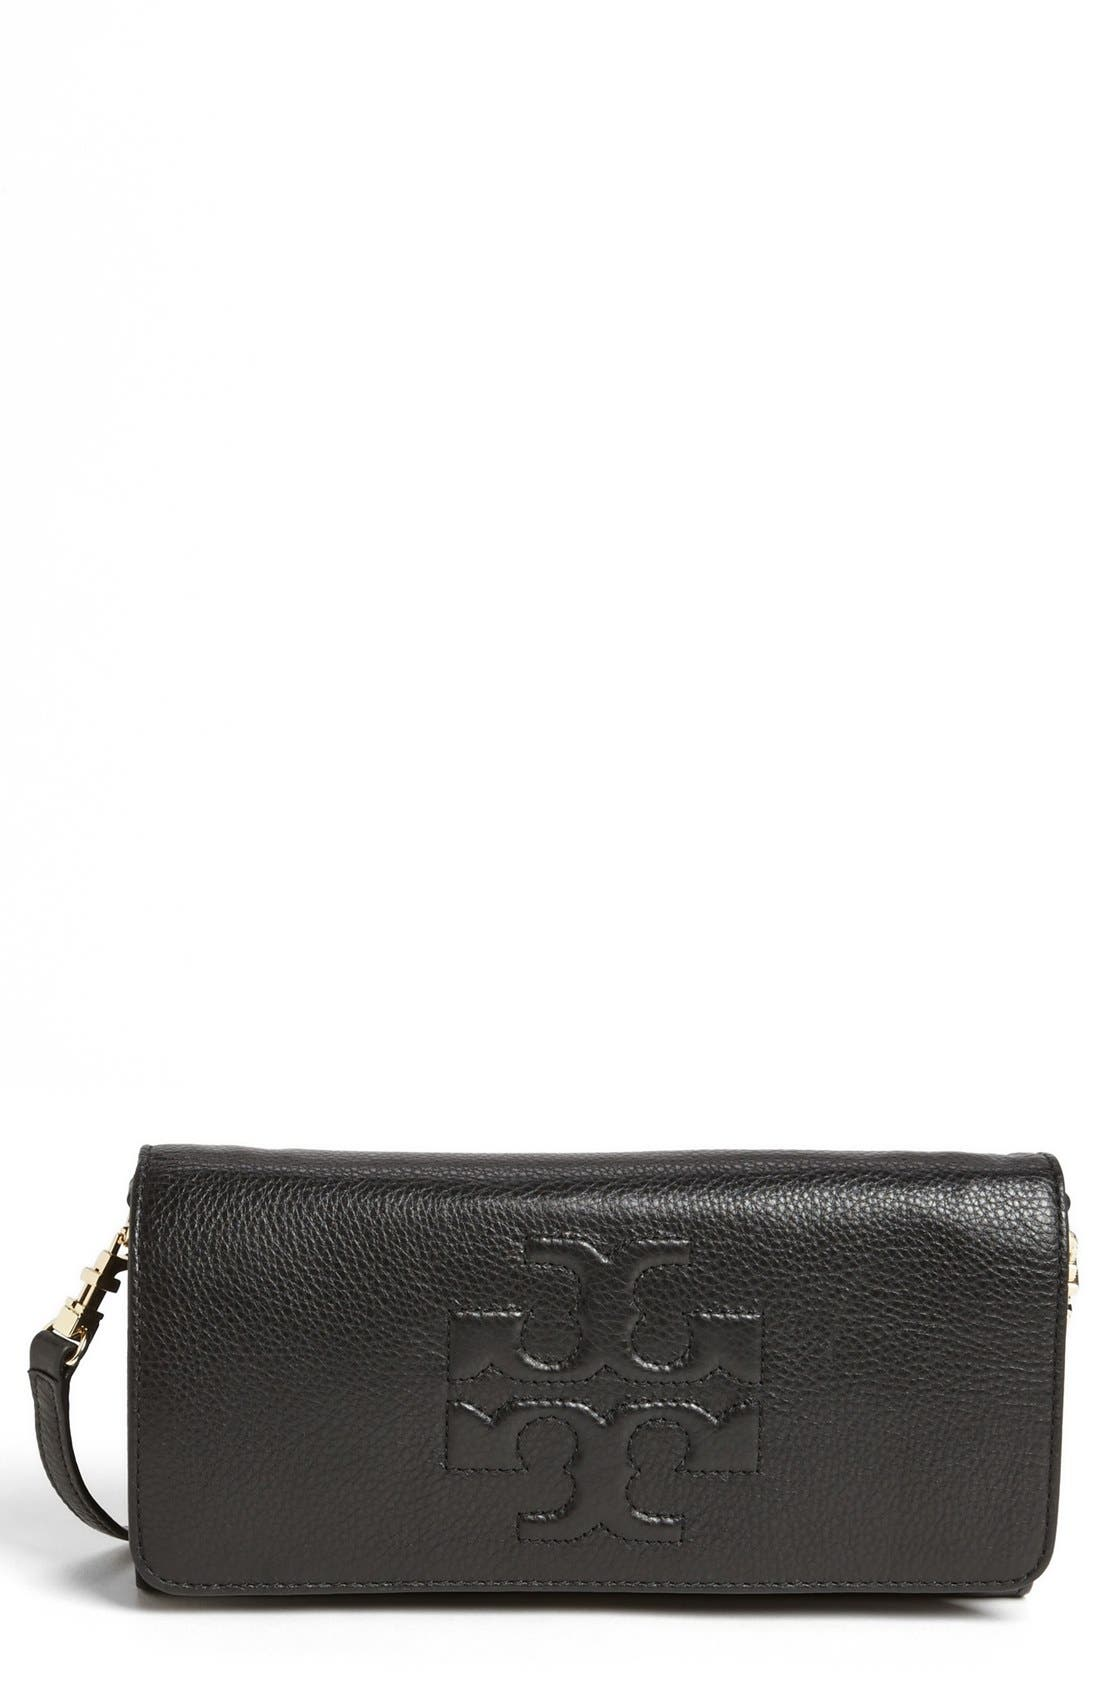 Alternate Image 1 Selected - Tory Burch 'Thea' Foldover Crossbody Clutch